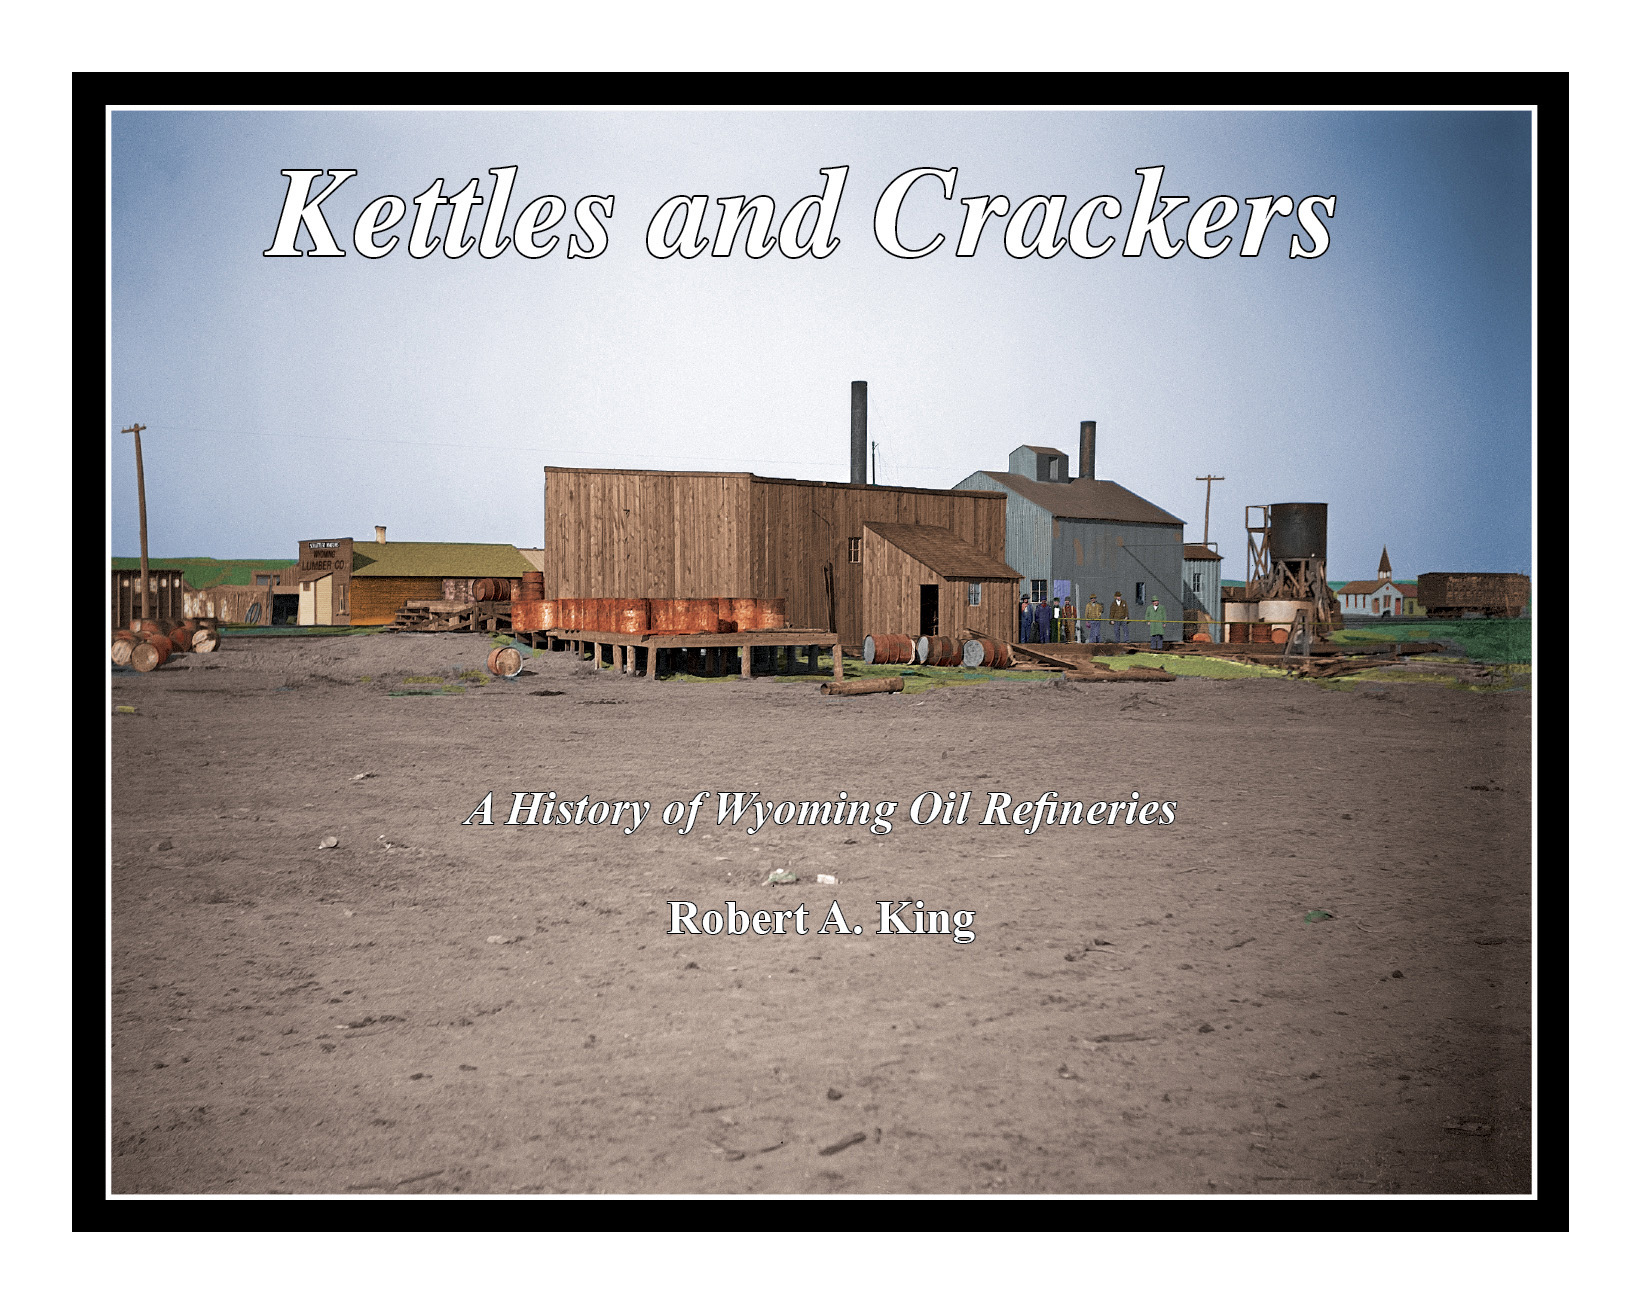 Kettles-Crackers-Cover